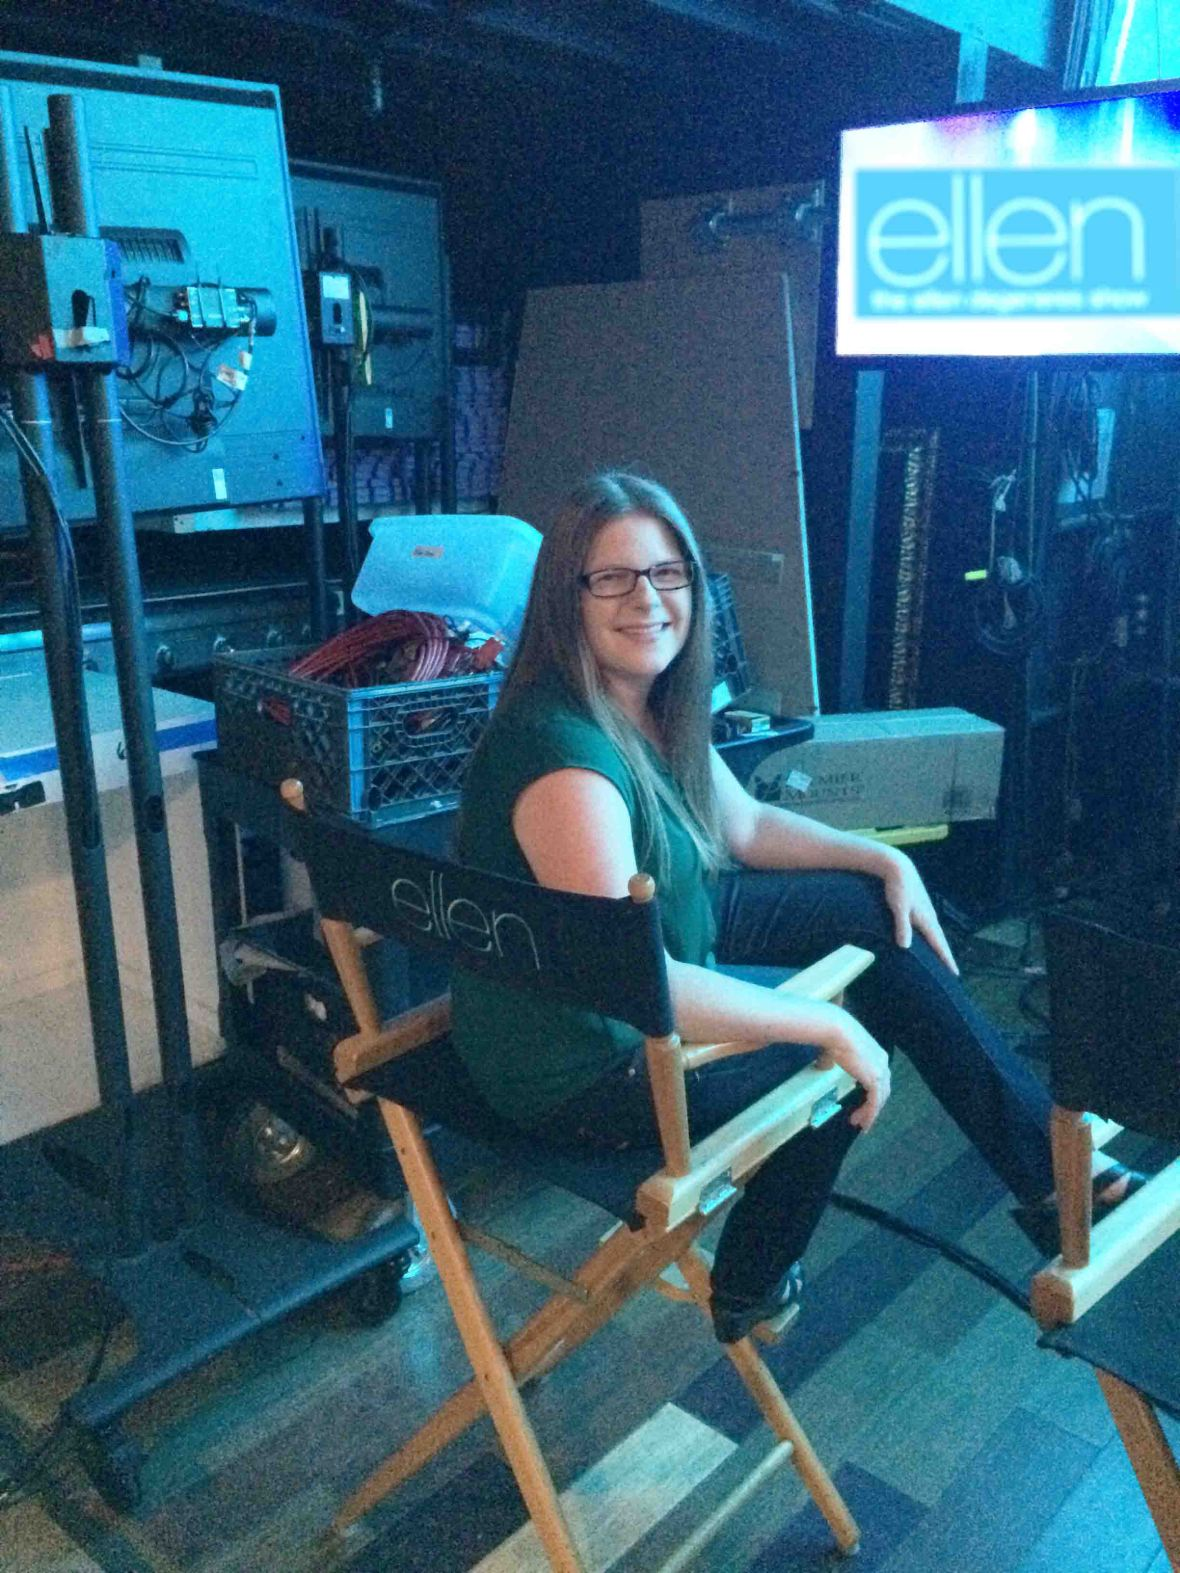 Backstage in the Director's chair!